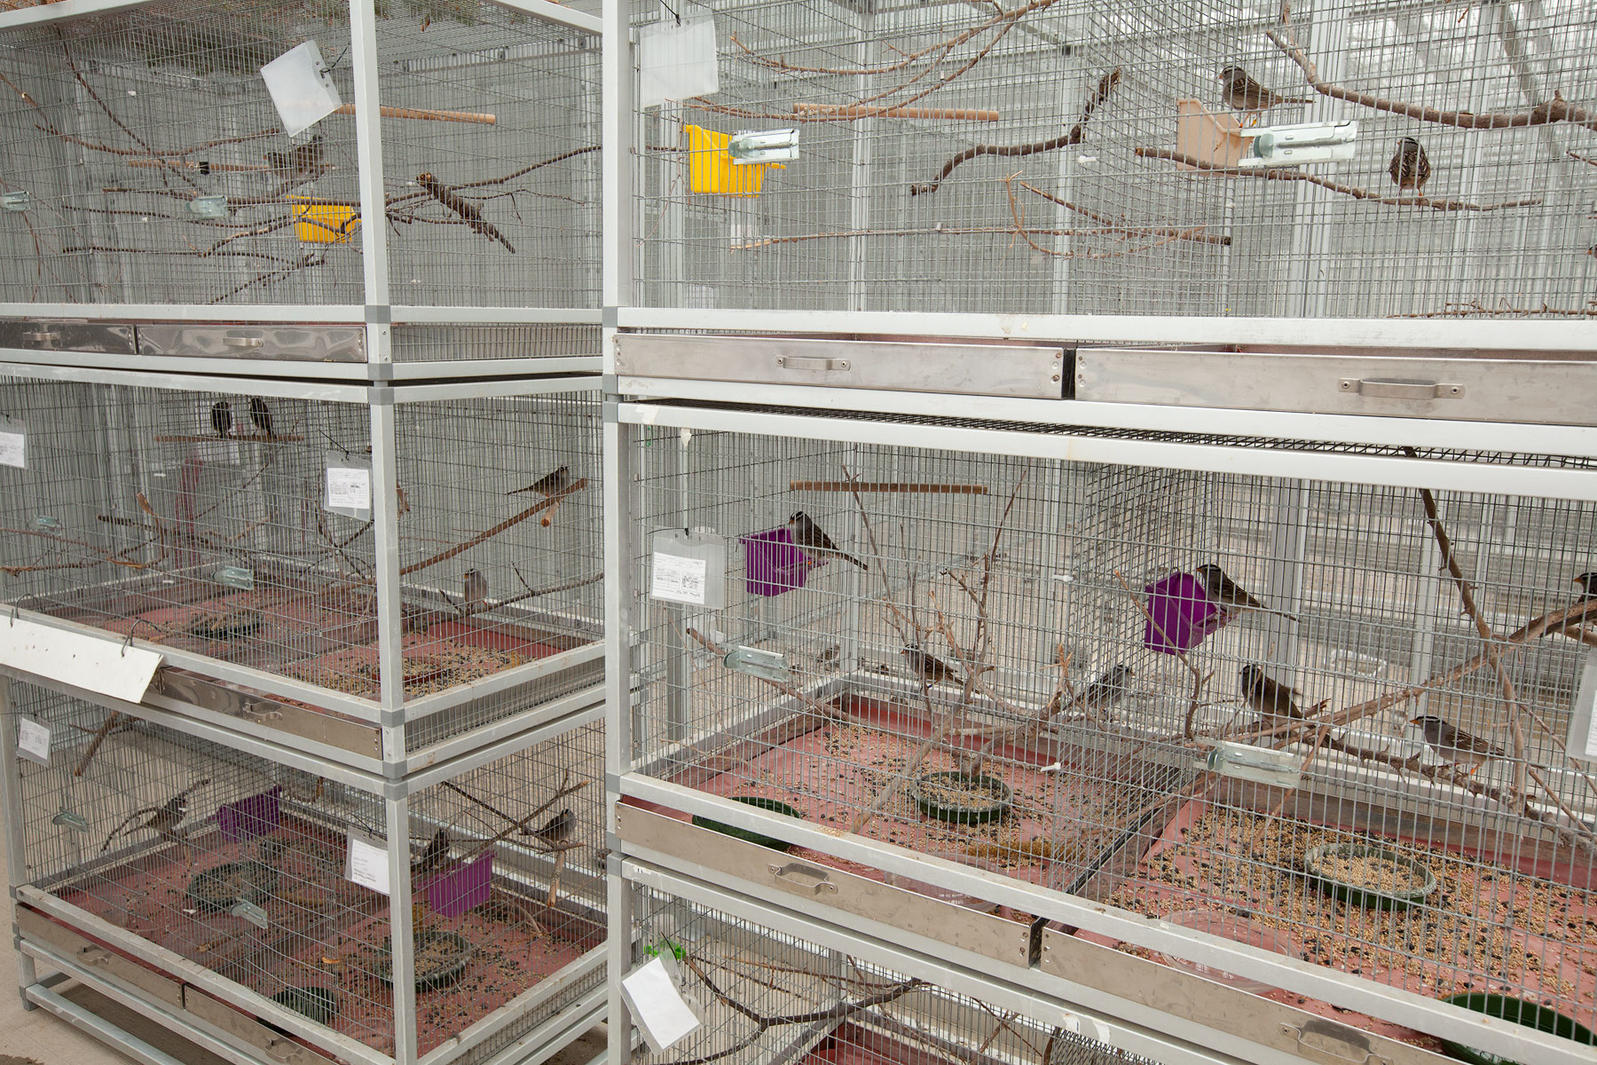 White-crowned Sparrows, part of Margaret Eng's study, at the Facility for Applied Avian Research at the University of Saskatchewan. Connor Stefanison